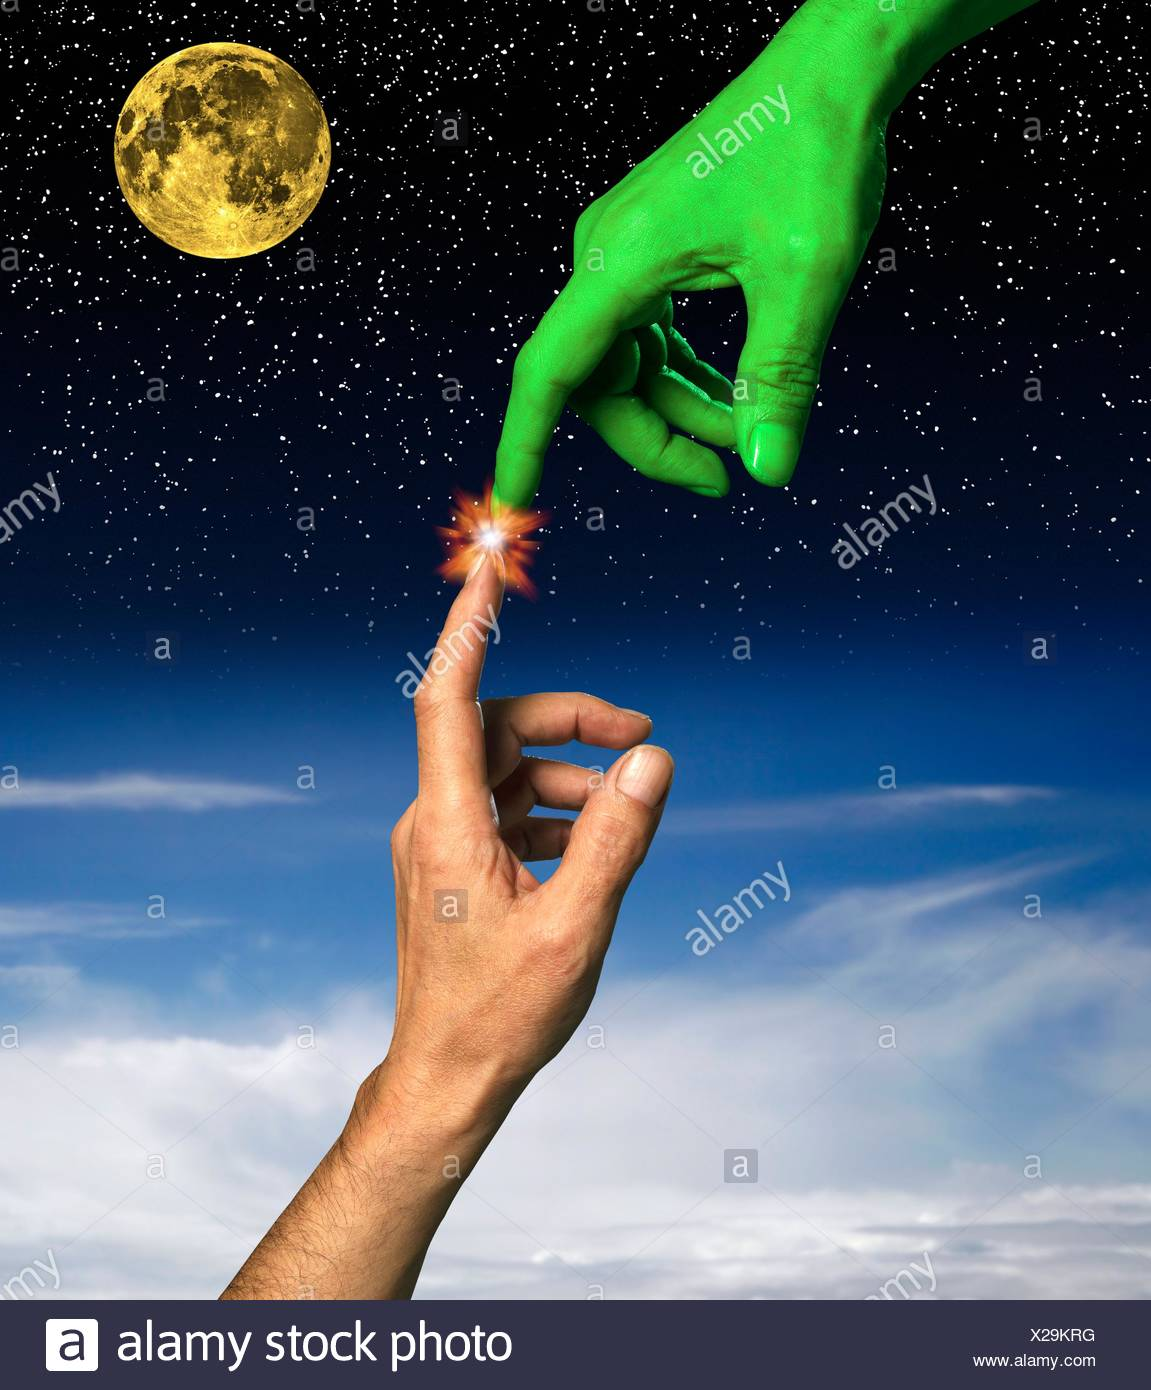 artwork, digitally generated, illustration, hands, fingers, forefingers, connections, touching, sensory perception, green colour, alien, space, the future, futuristic, curiosity, the unknown, mystery, ideas, energy, spark, electricity - Stock Image